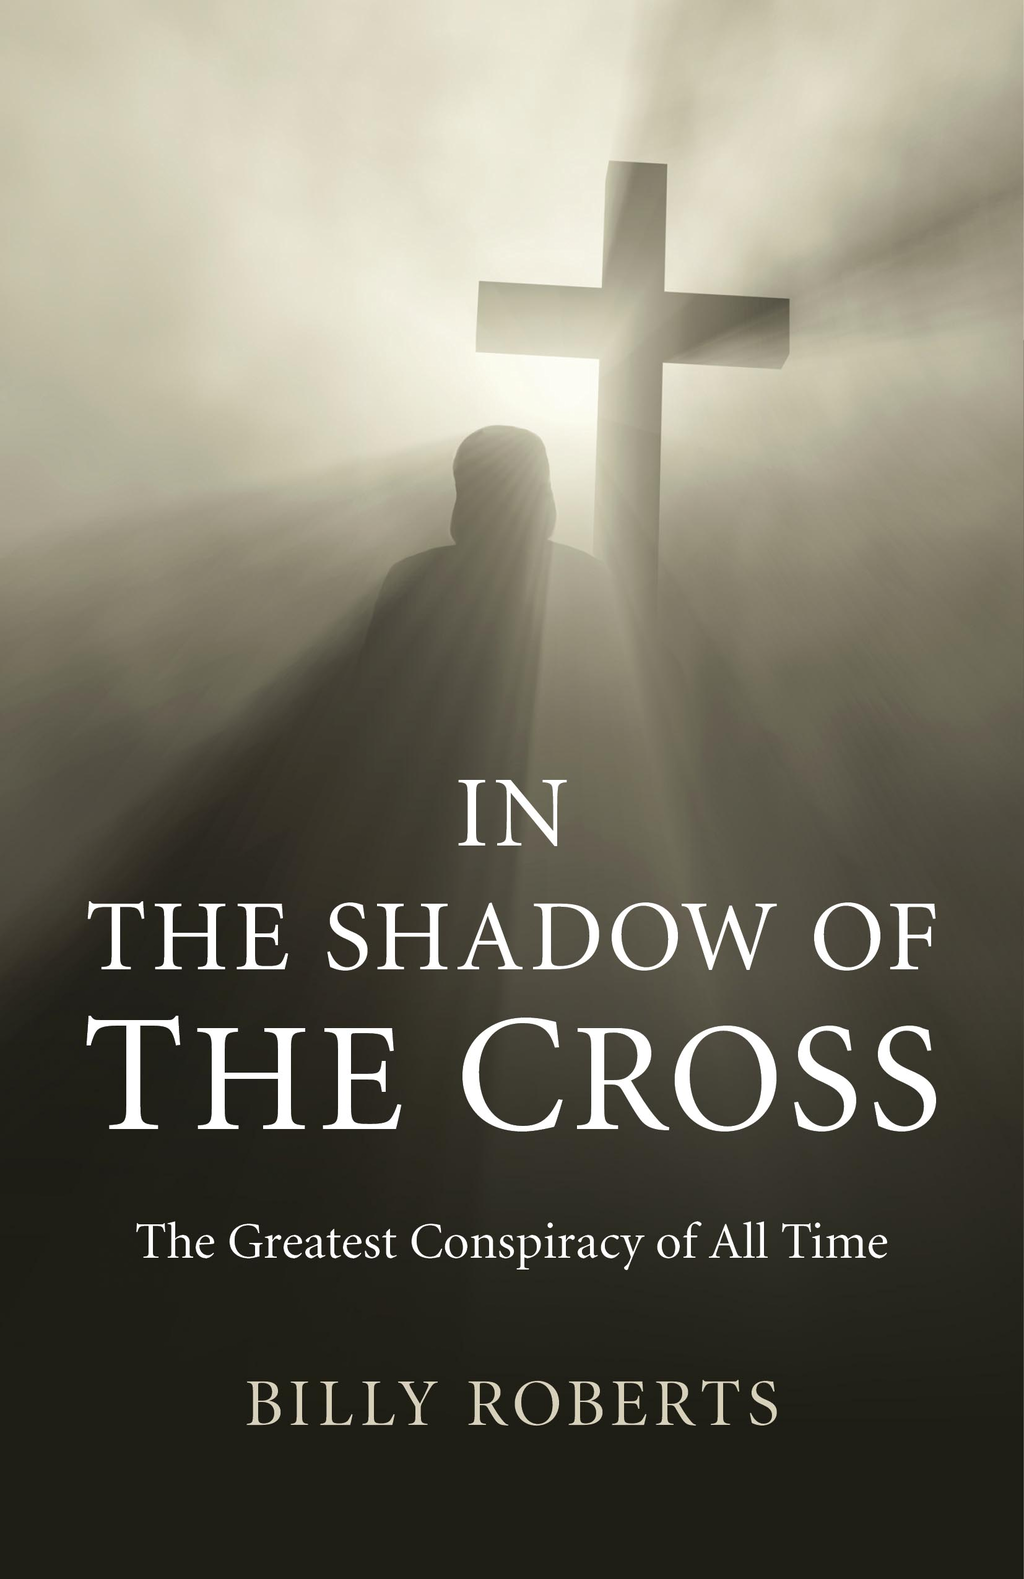 In the Shadow of the Cross: The Greatest Conspiracy of All Time